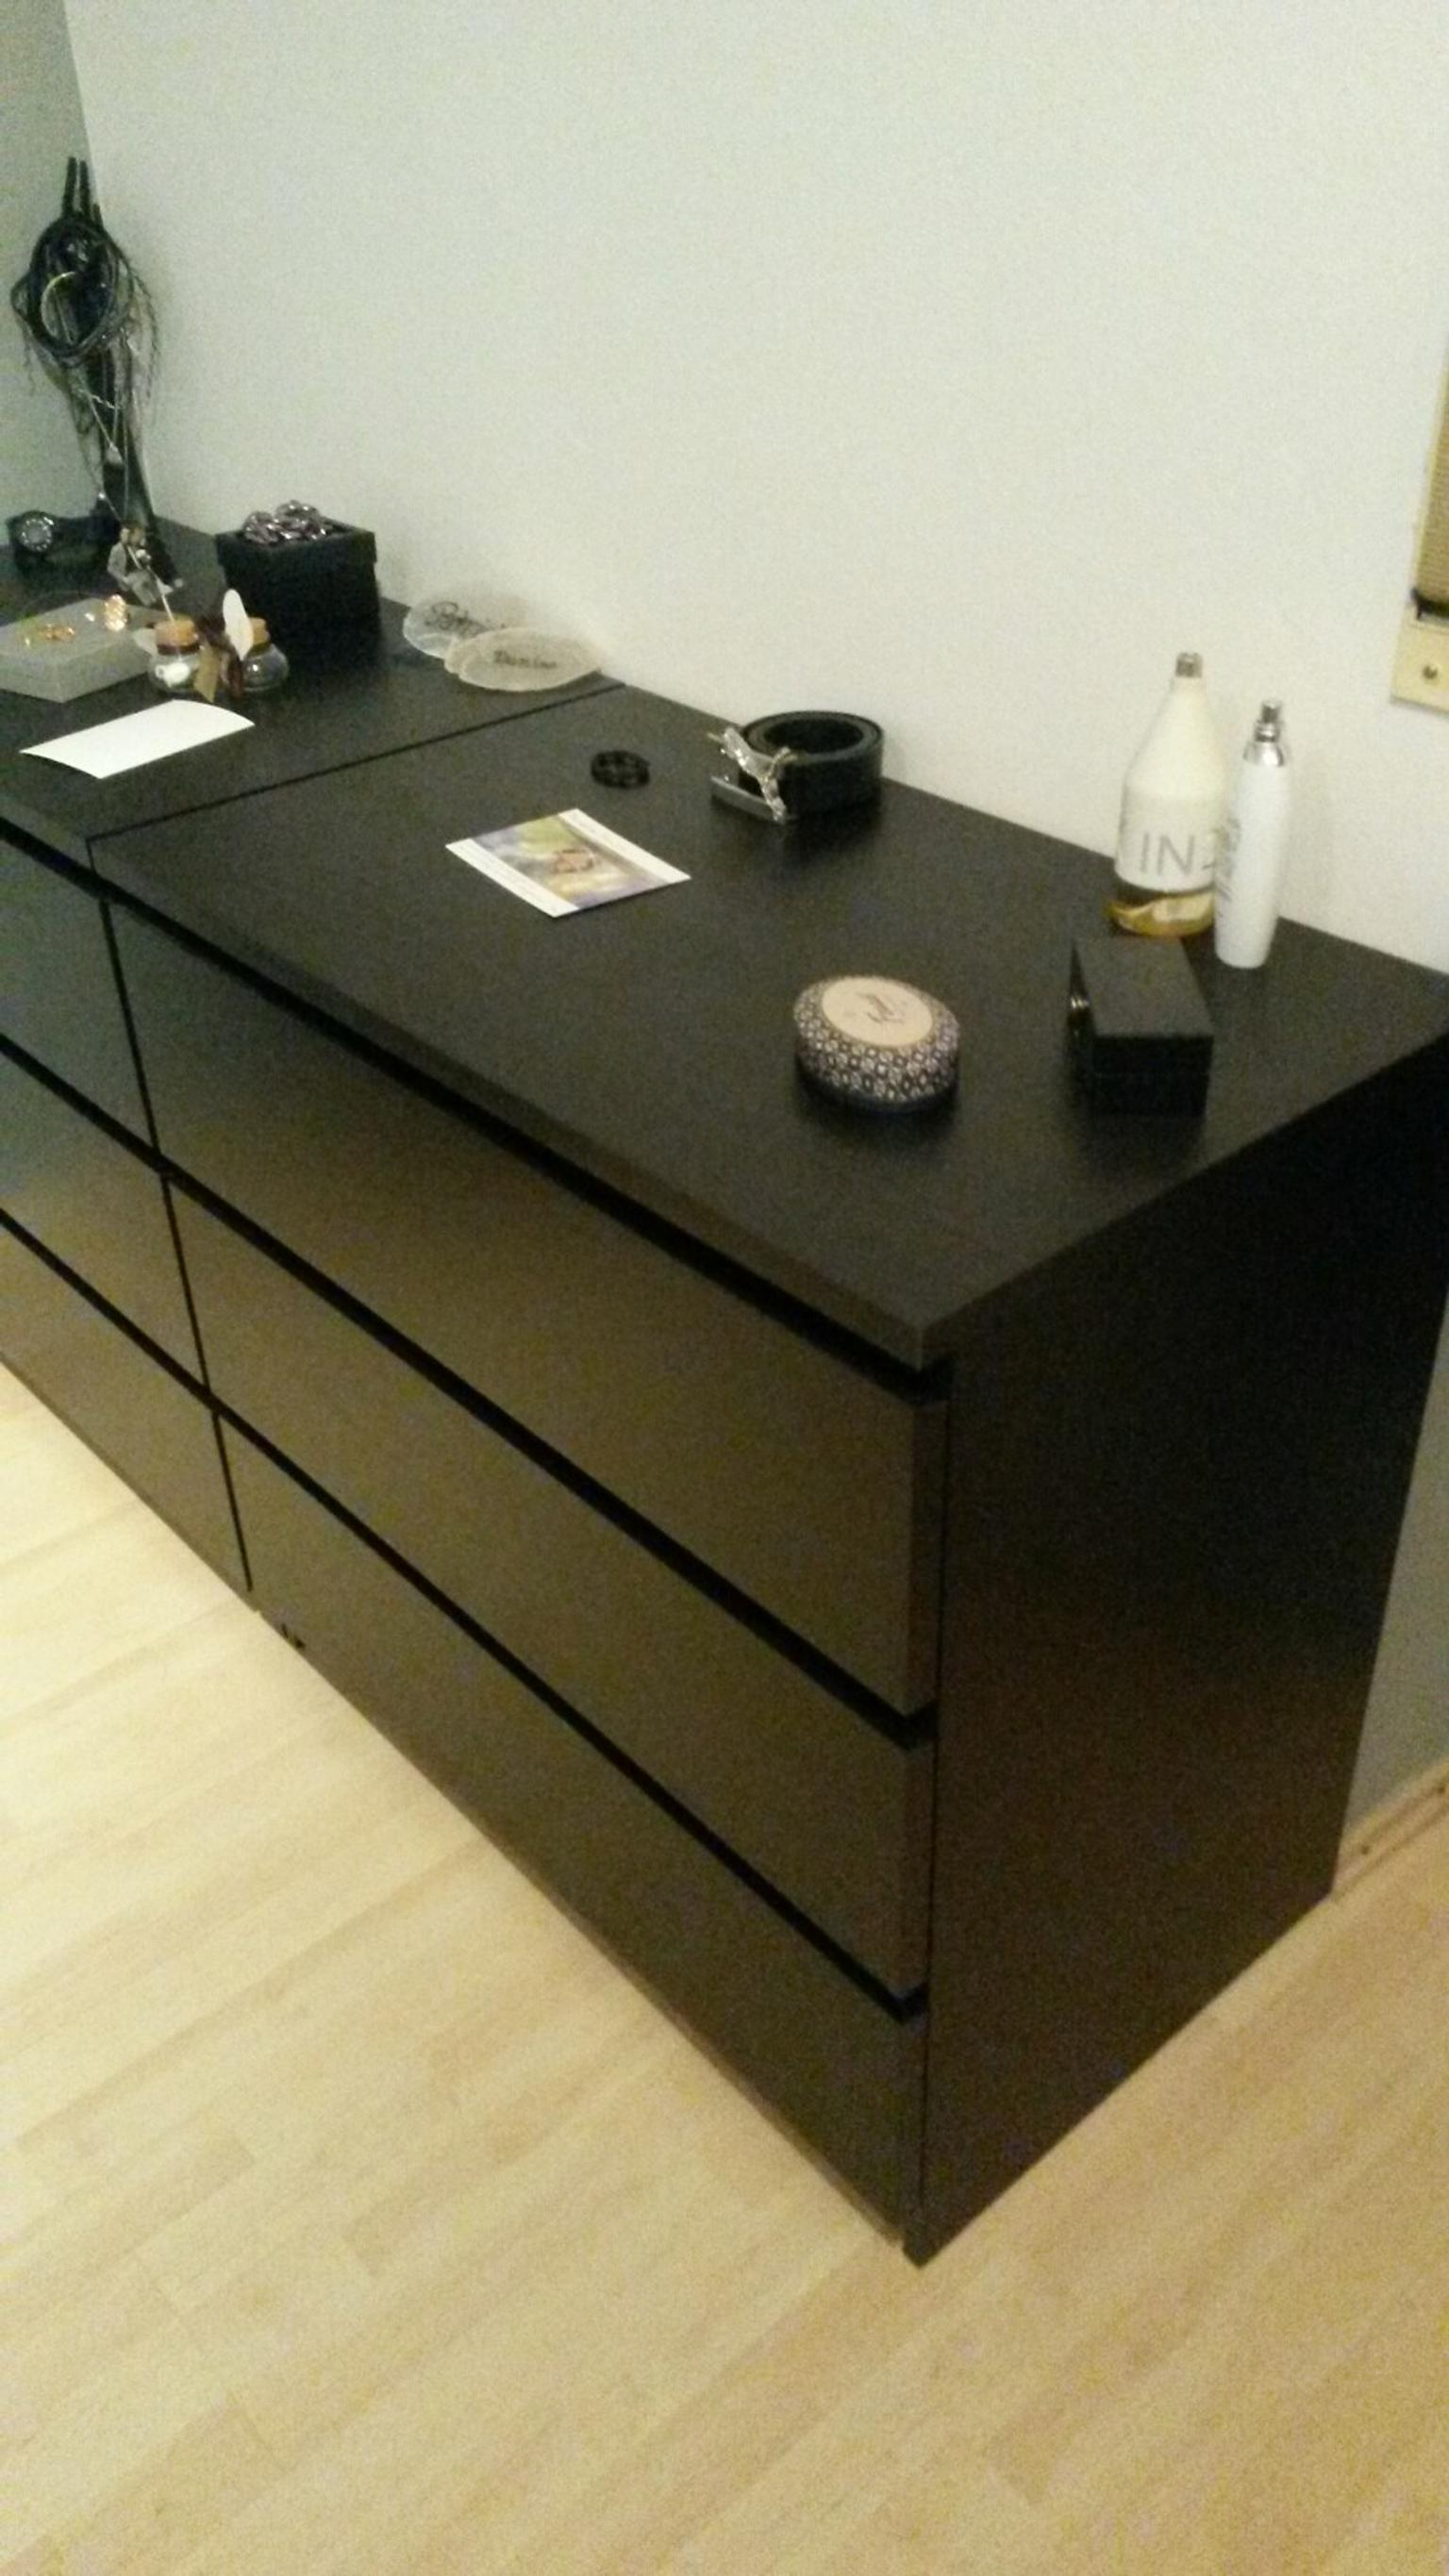 Ikea Malm Kommode Schwarz In 91207 Lauf An Der Pegnitz For 45 Shpock